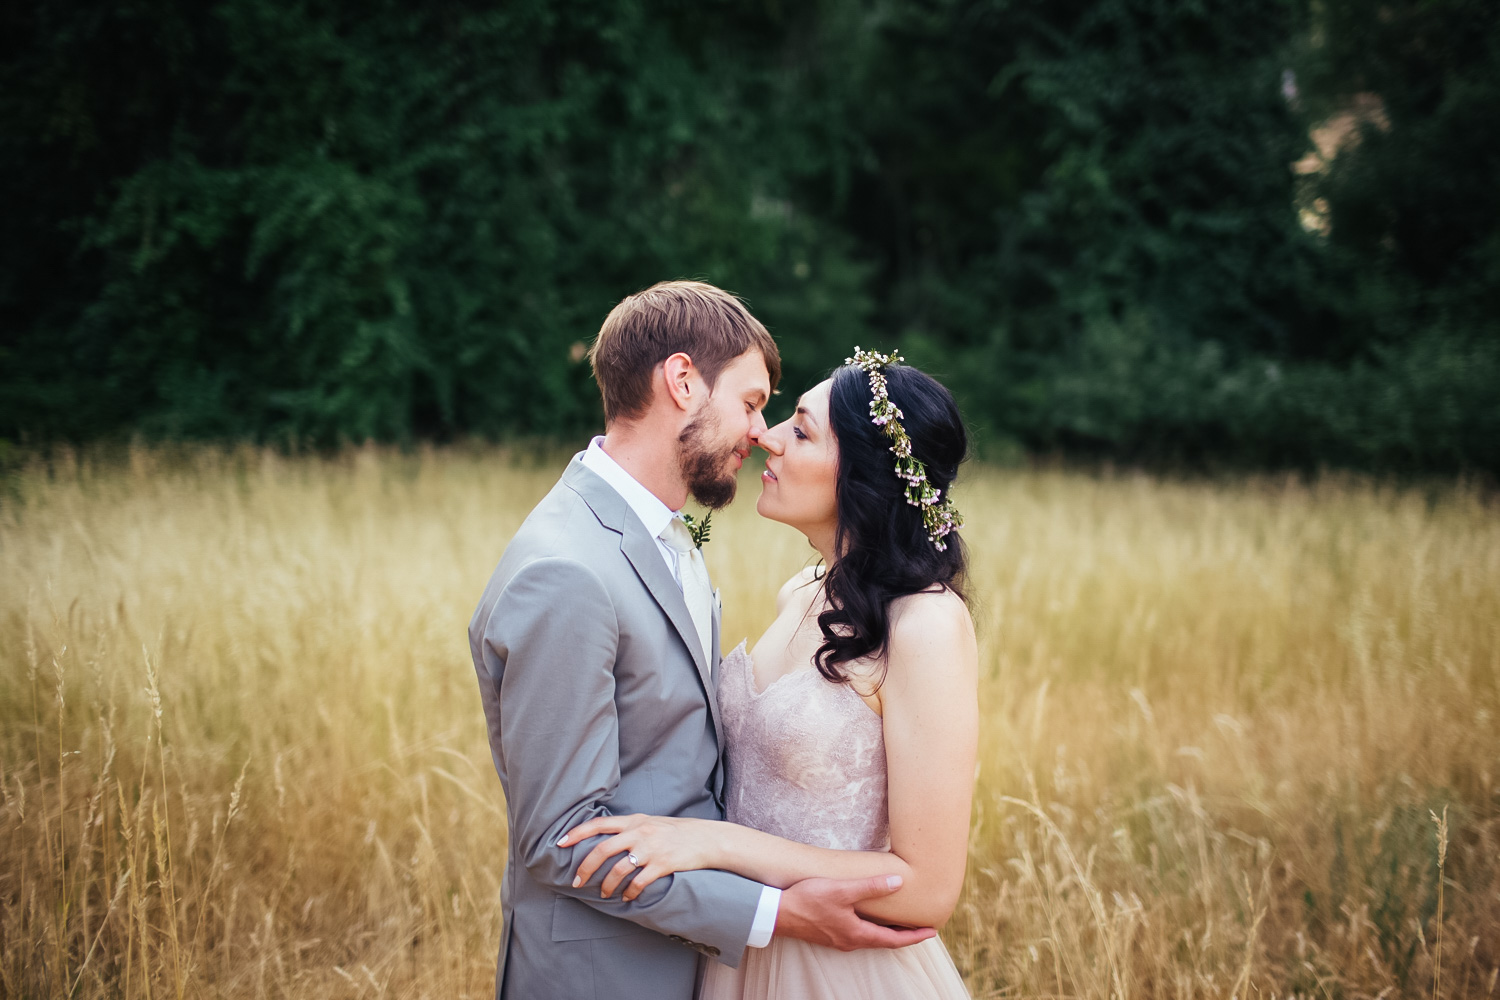 mendocino-county-wedding-photographer-natural-light-8.jpg